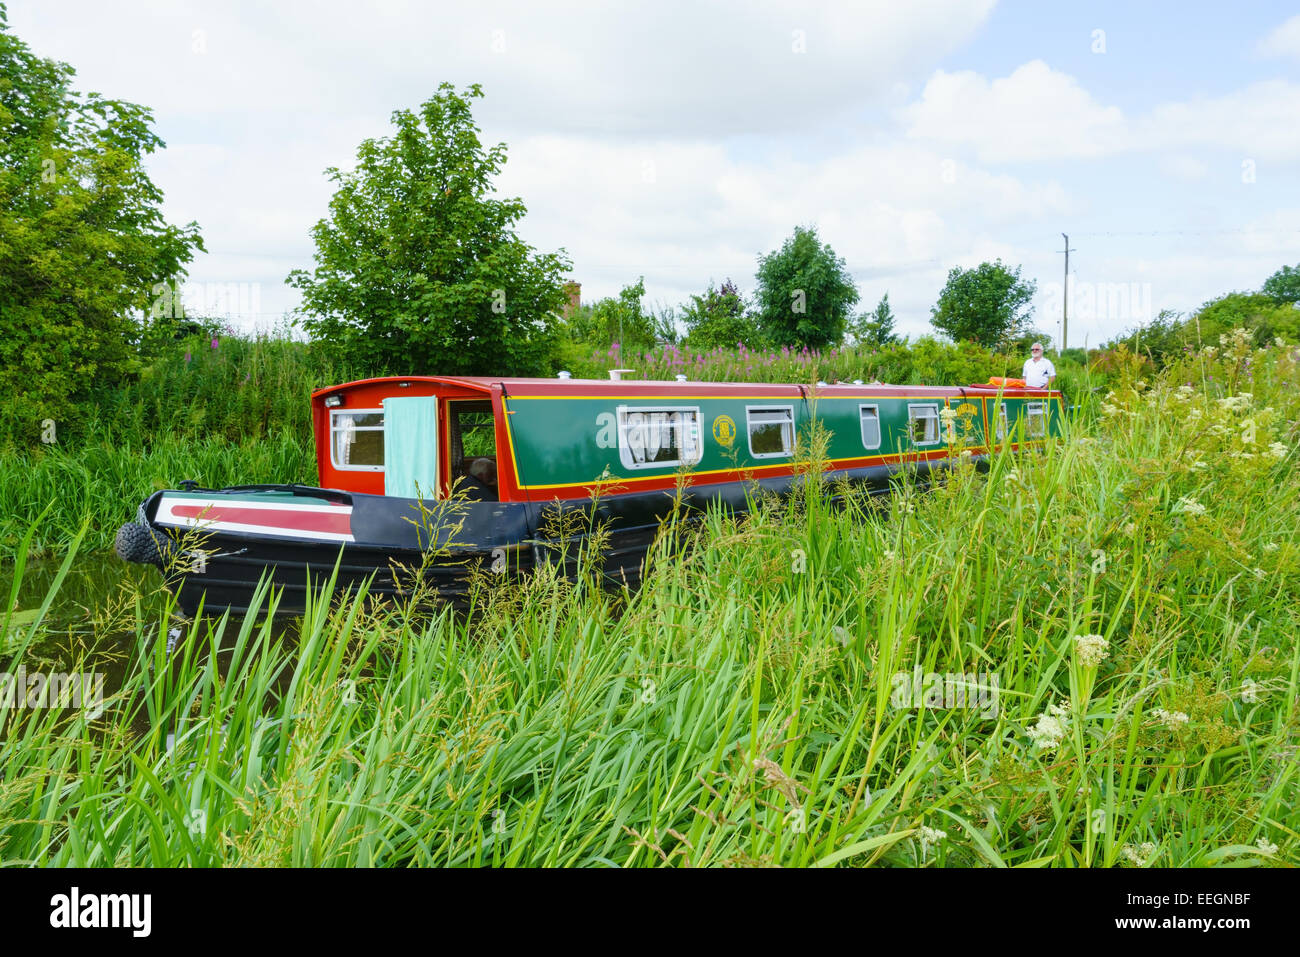 A narrowboat on the Union Canal travelling through grassy fields, near Edinburgh. - Stock Image